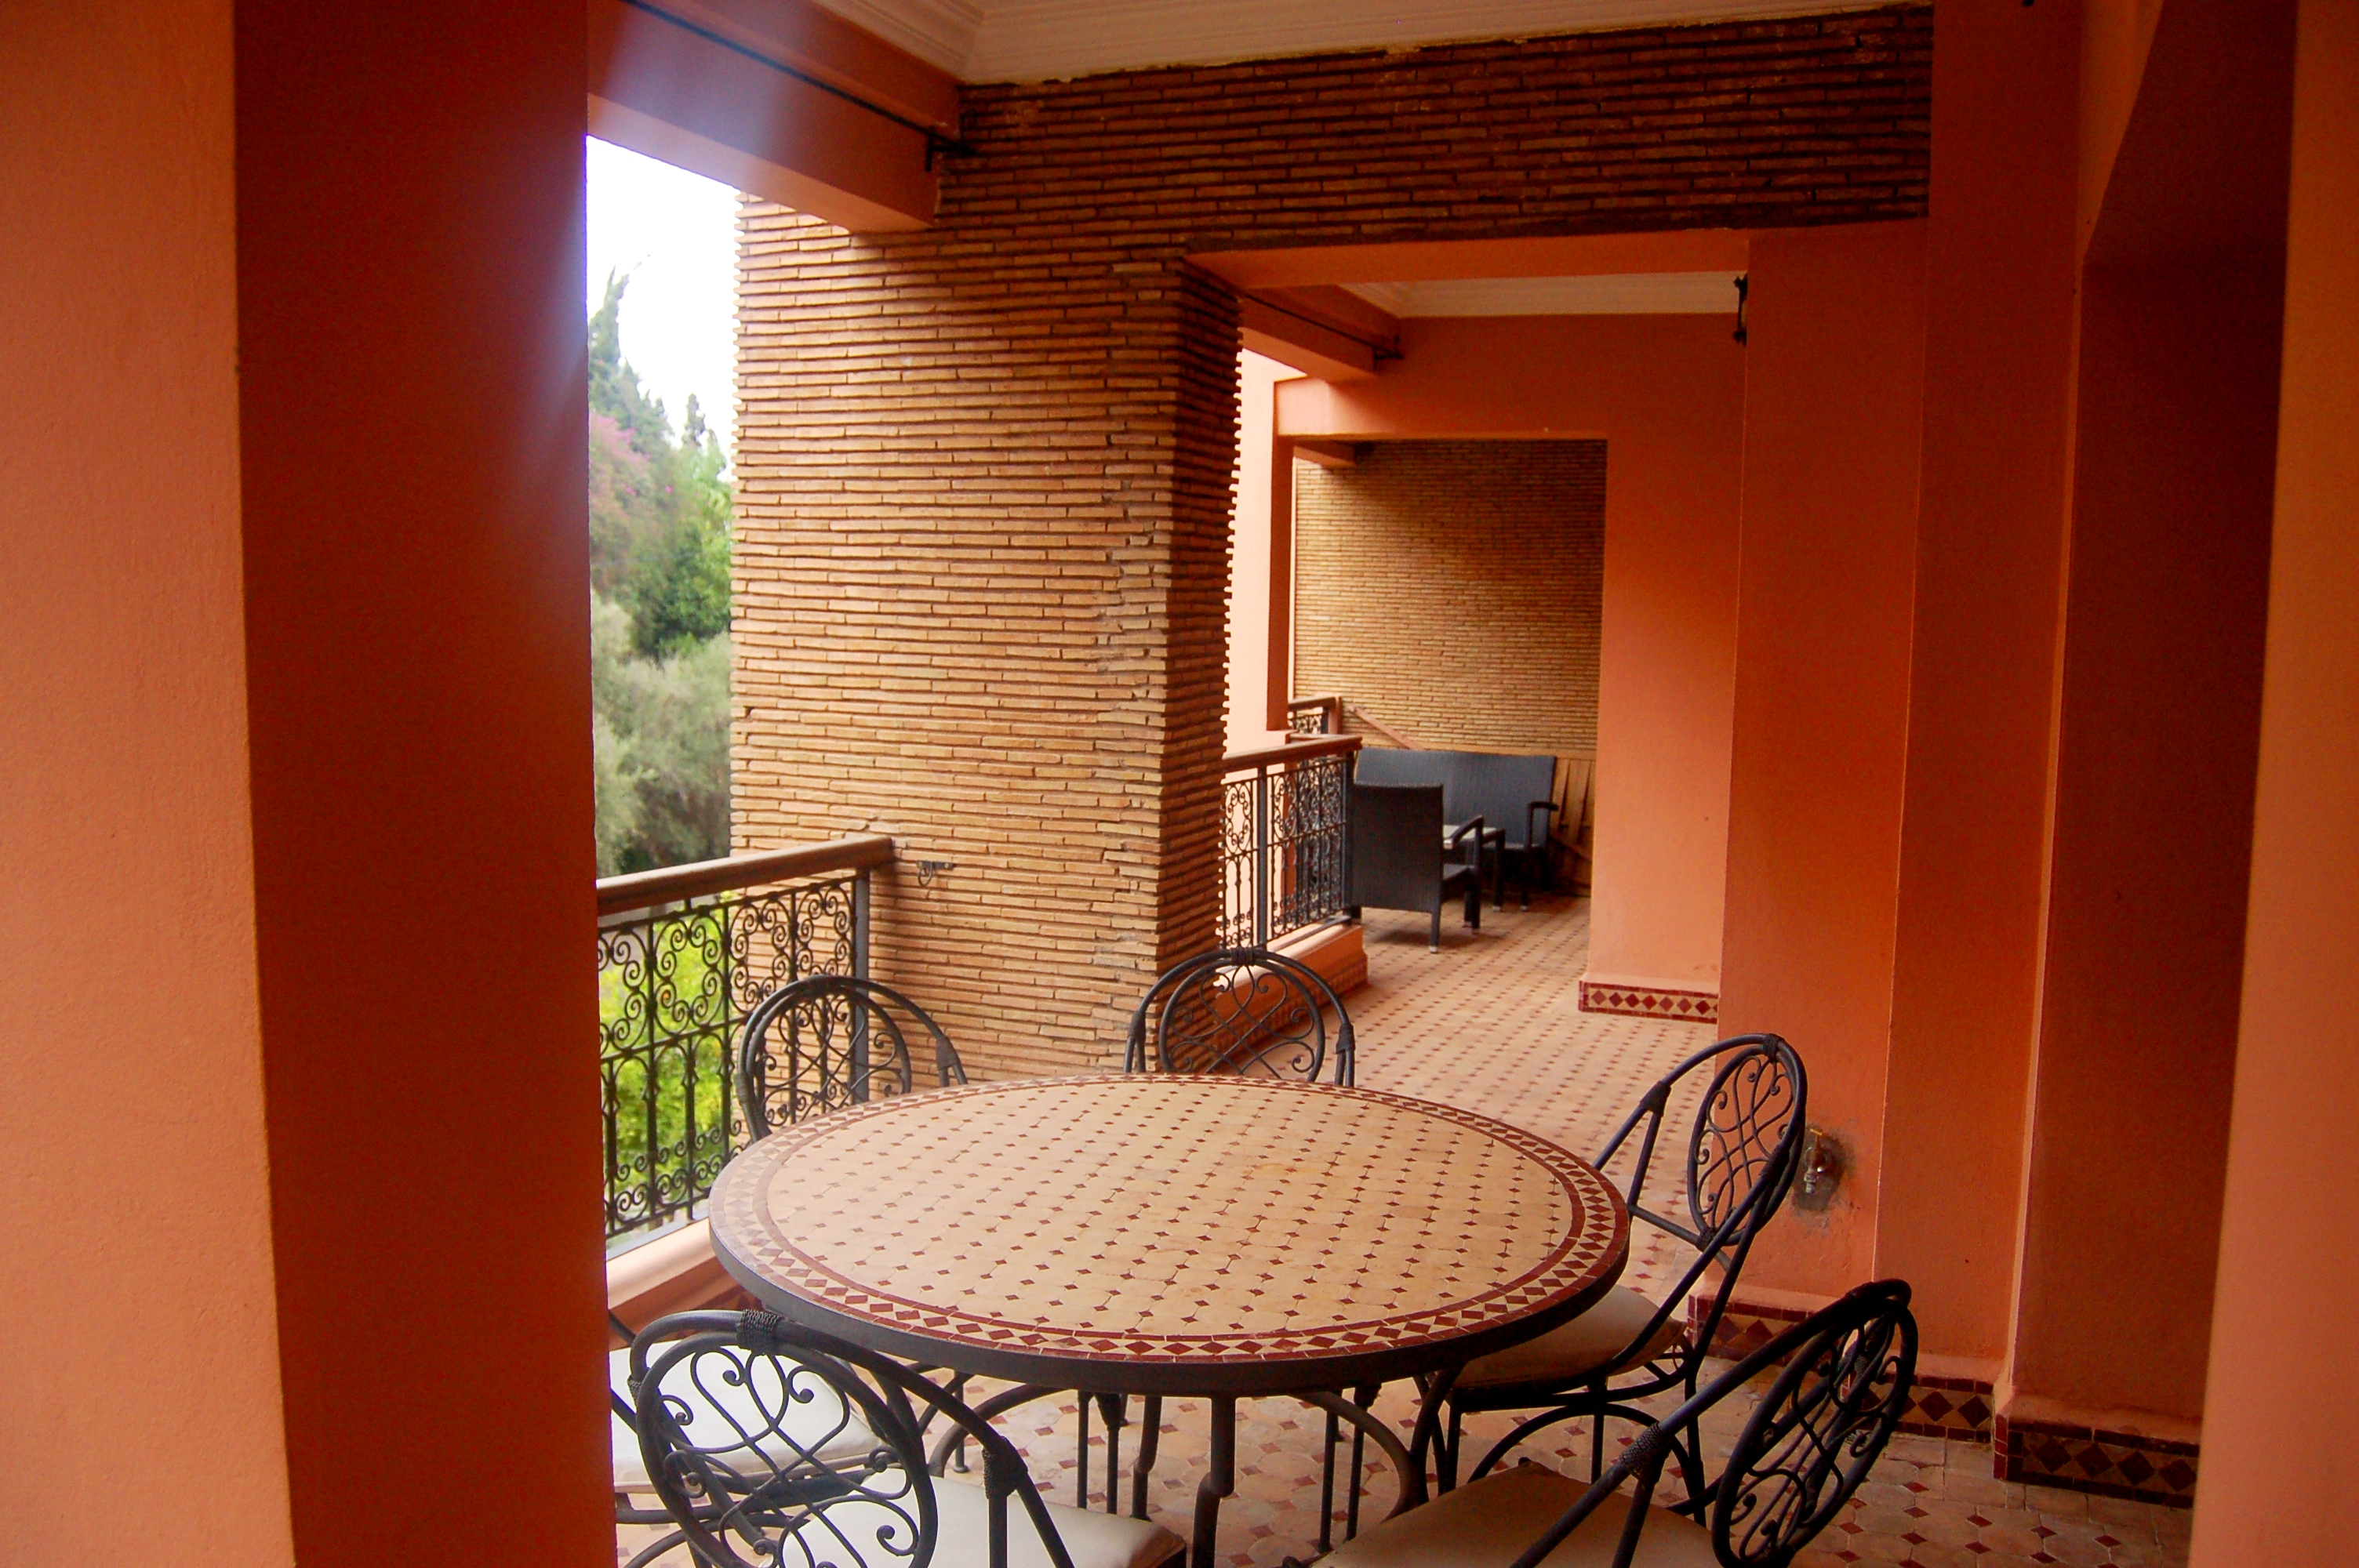 Apartment for renting HivernageMarrakech